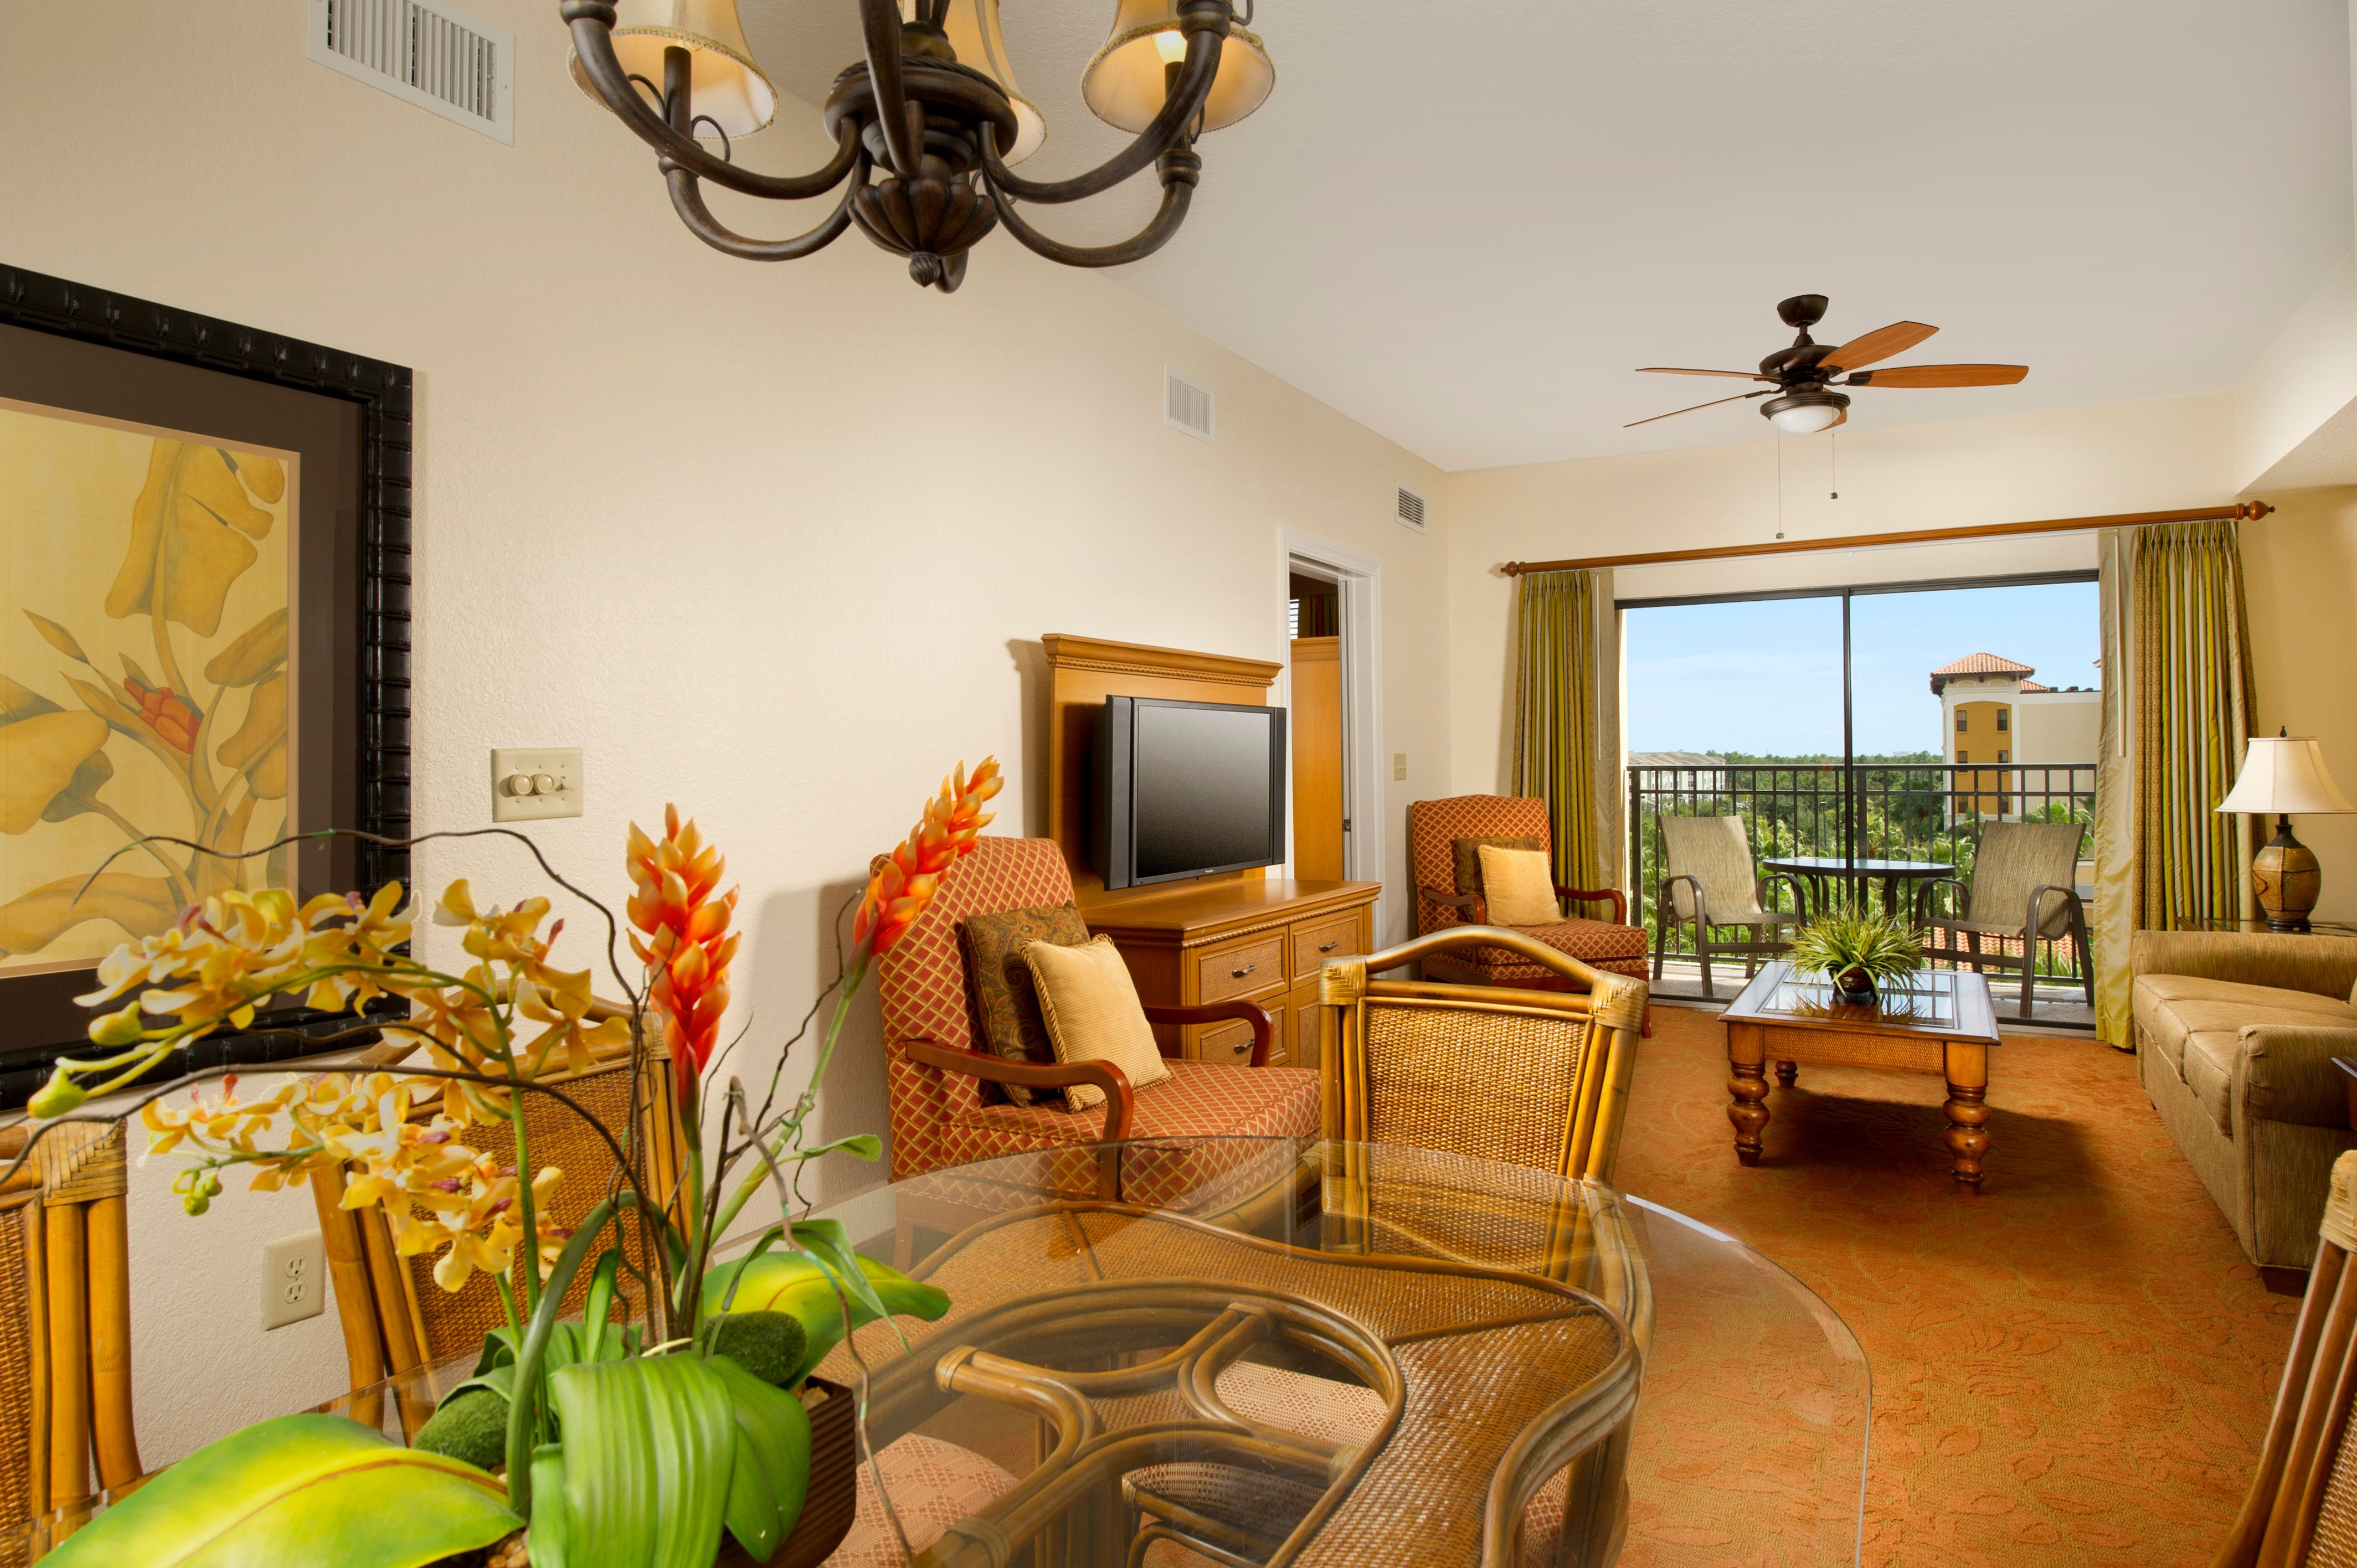 Get great deals on 2 and 3bedroom suites at the 1